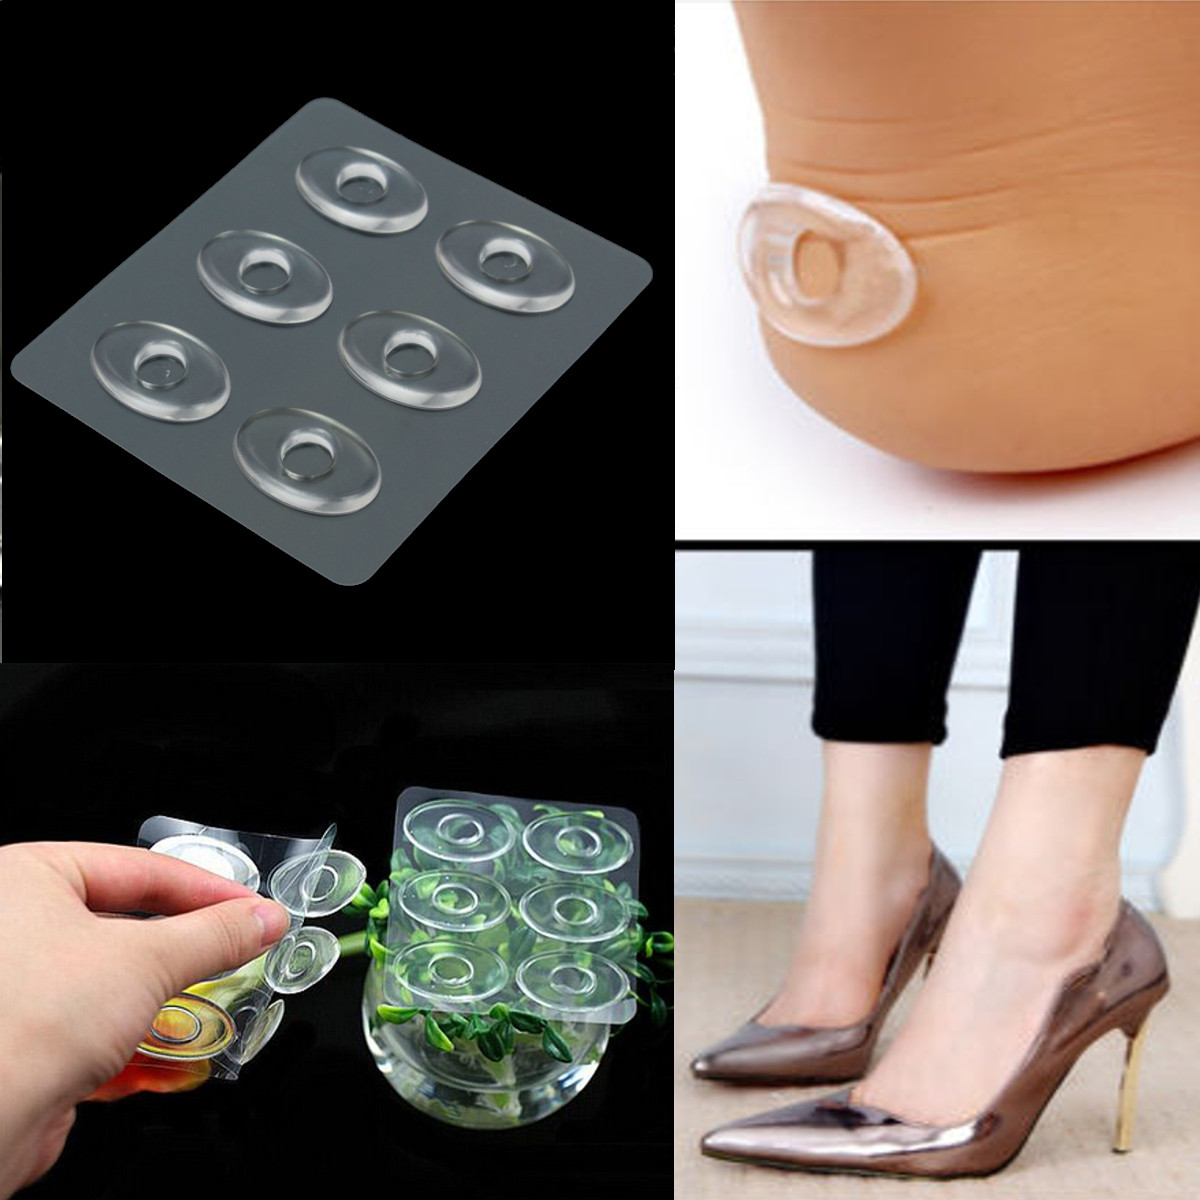 6Pcs Silicone Gel Shoe Insole Inserts Pad Cushion Foot Care Heel Grips Liner New